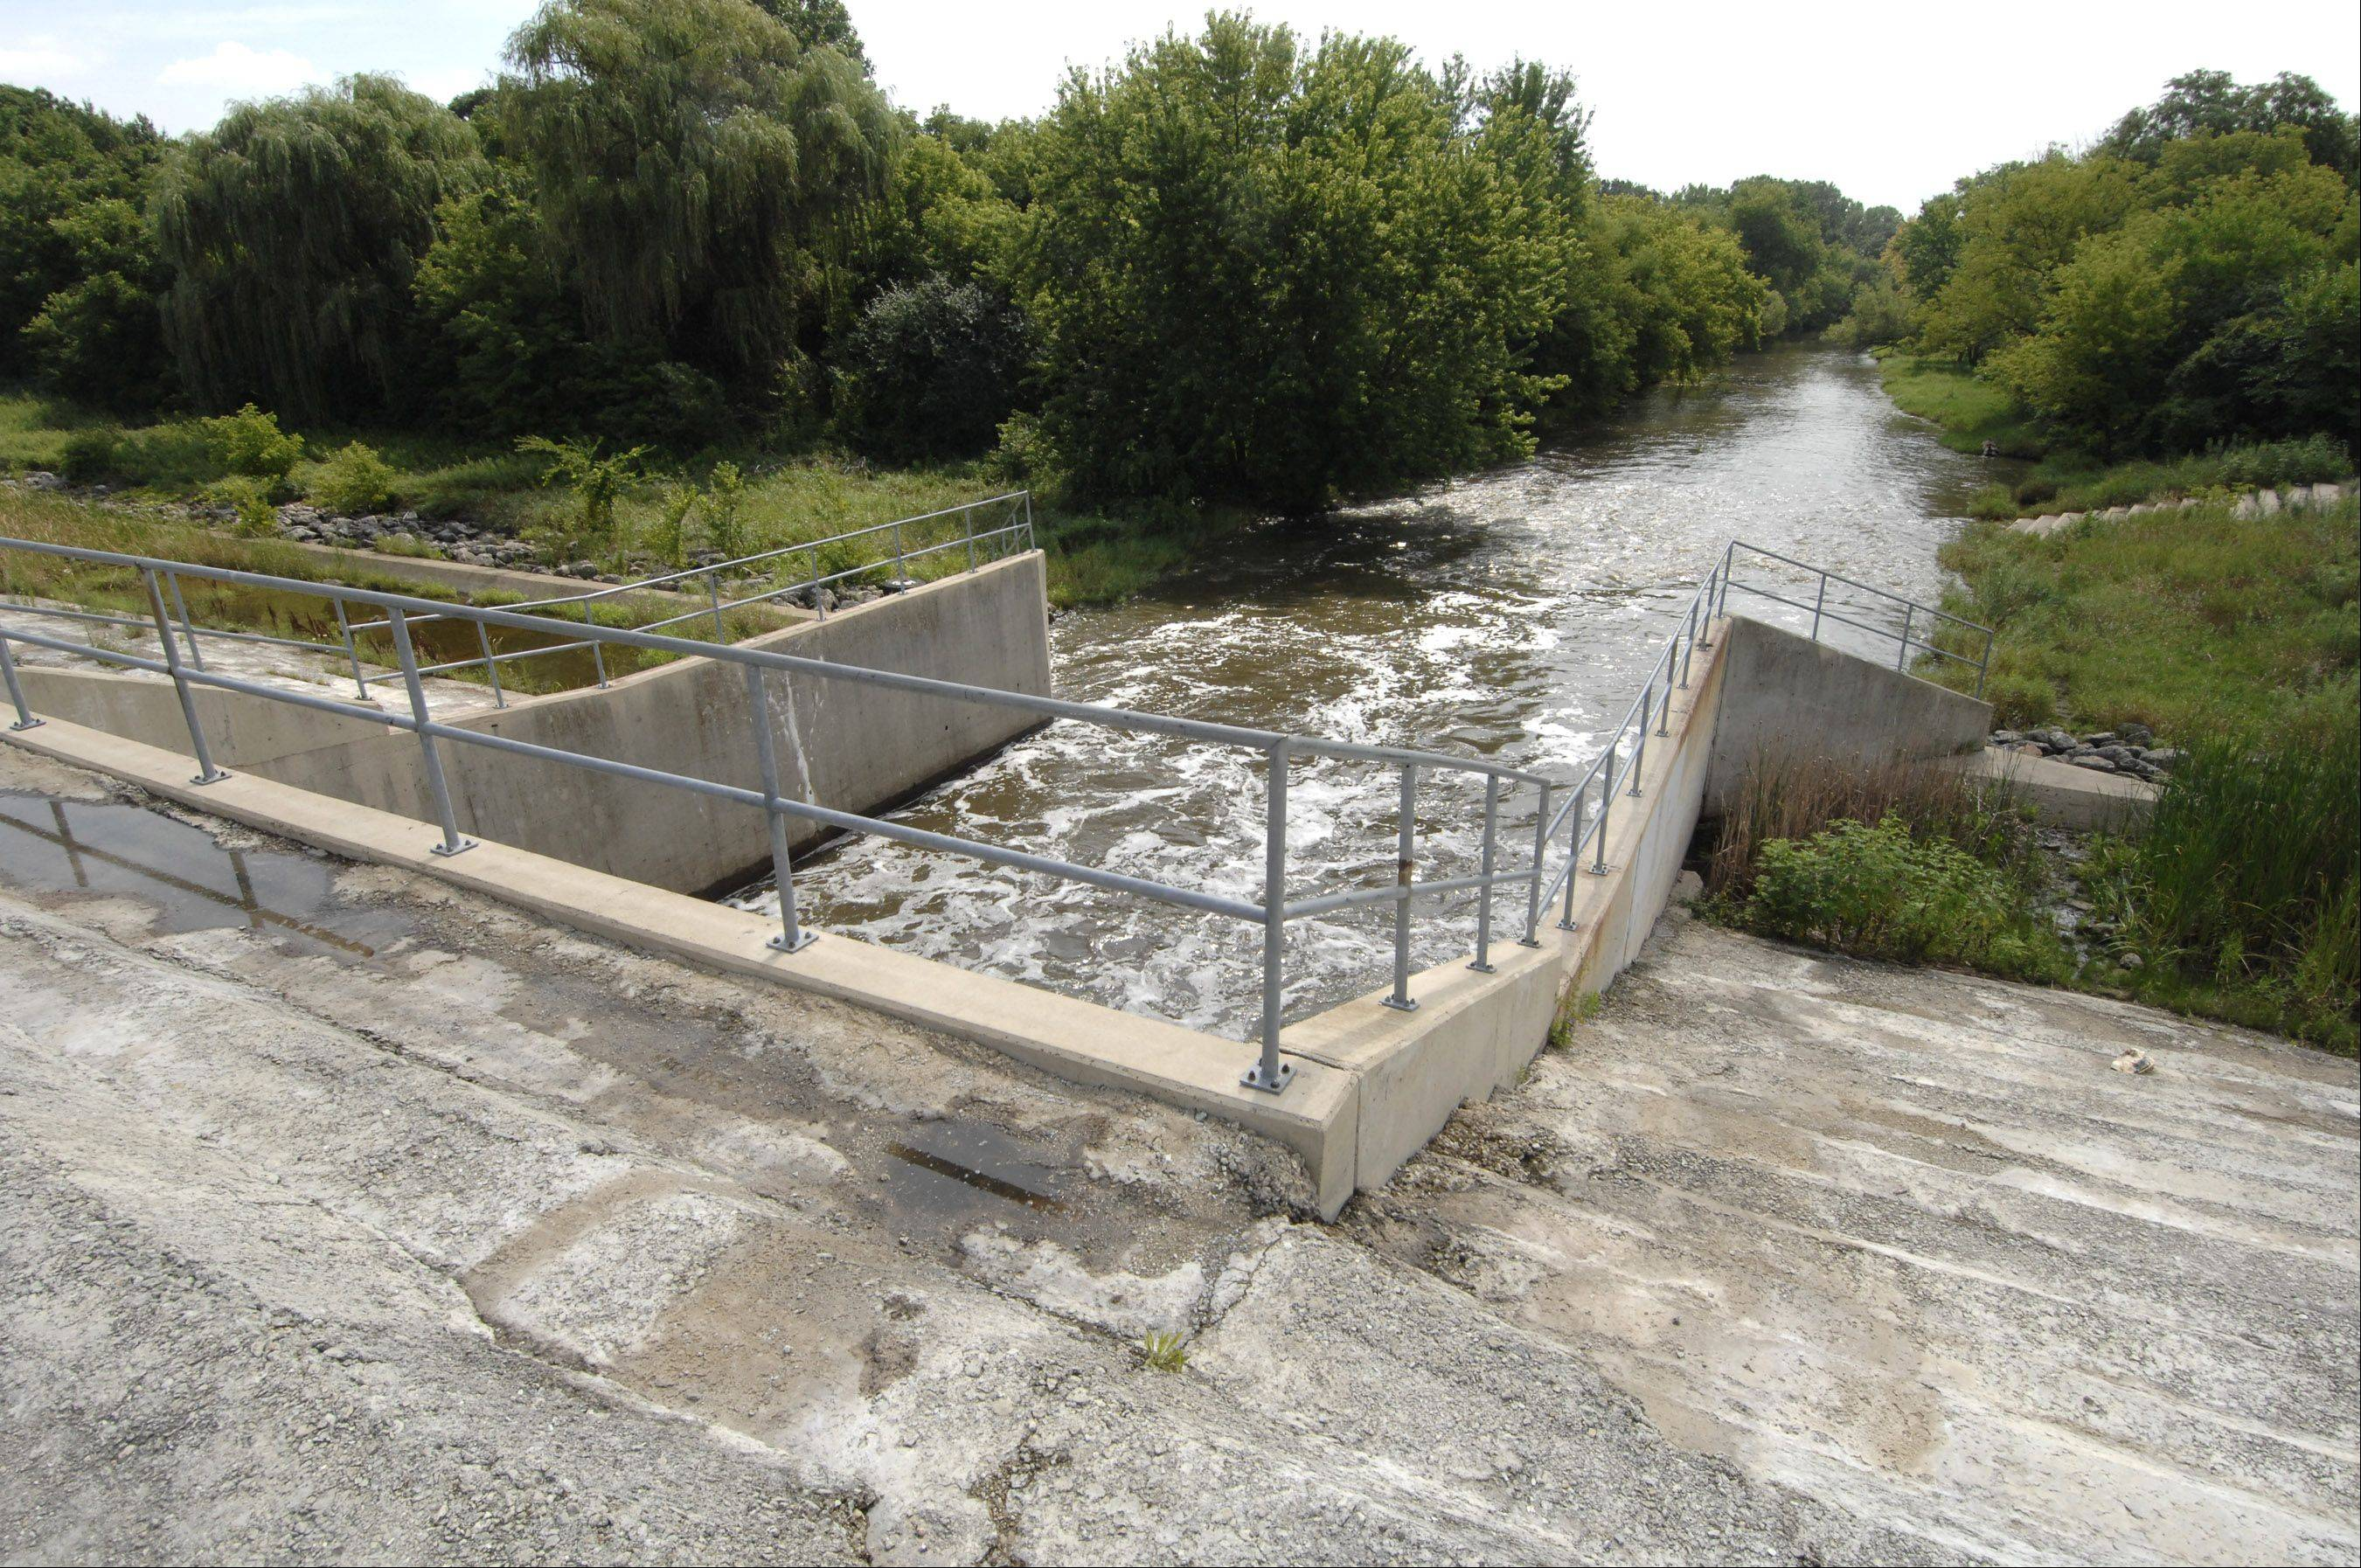 The candidates in Warrenville's mayoral race have differing views on whether Fawell Dam near Naperville should be removed to address flooding problems upstream in Warrenville.